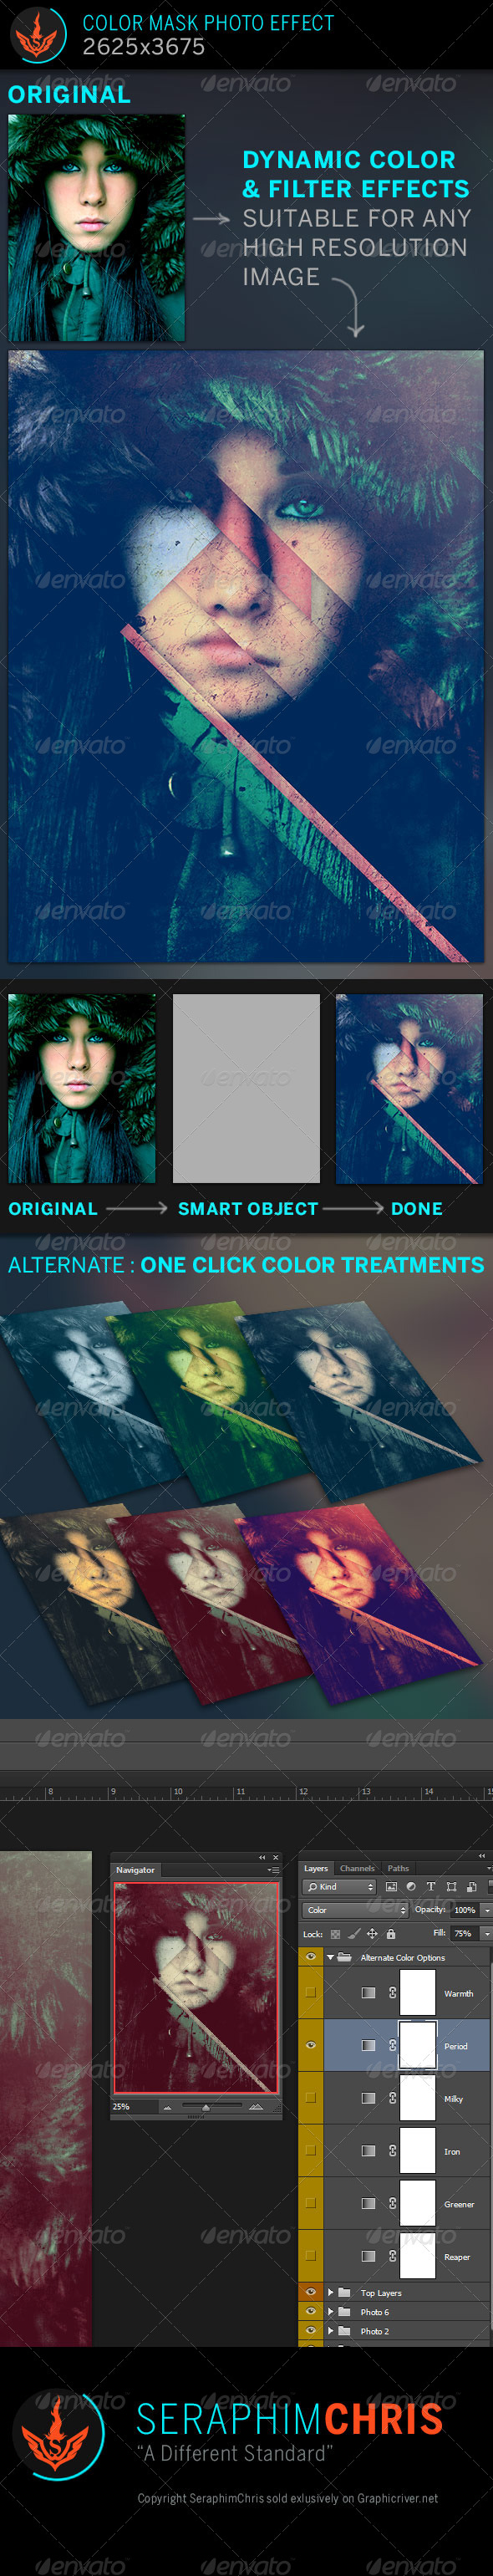 GraphicRiver Color Mask Photo Effect Template 7902642